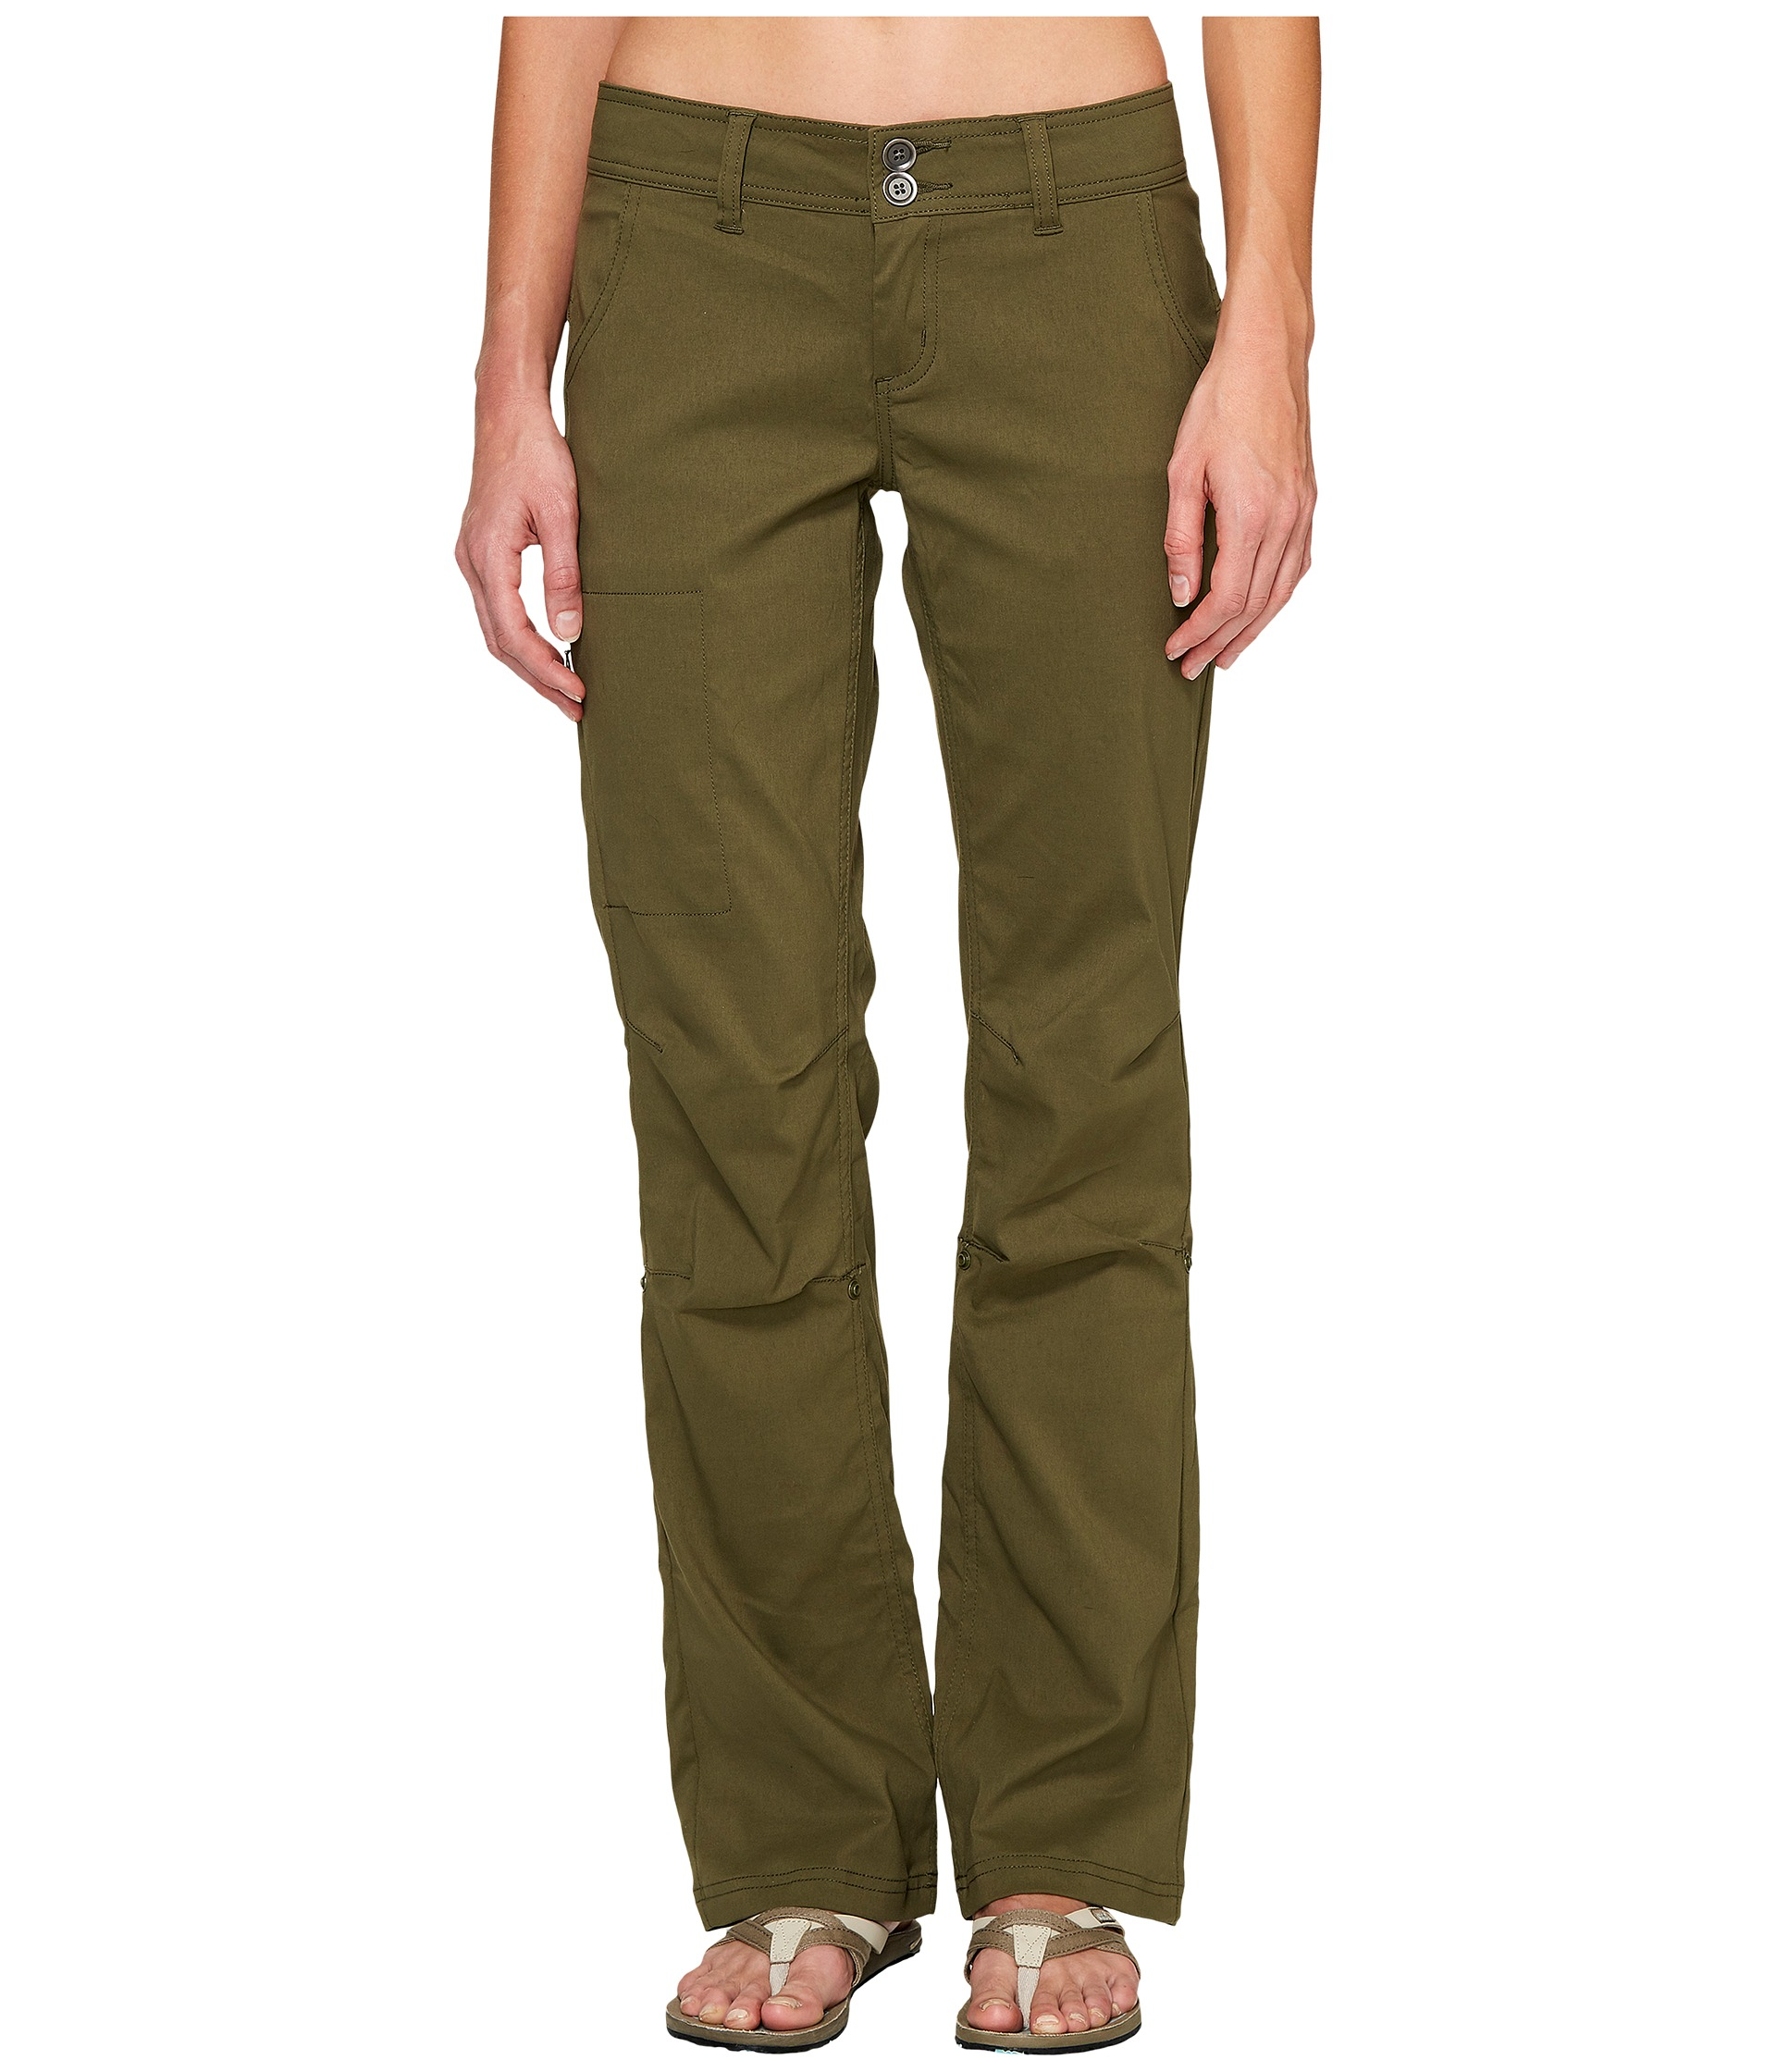 Prana Halle Pant - Zappos.com Free Shipping BOTH Ways